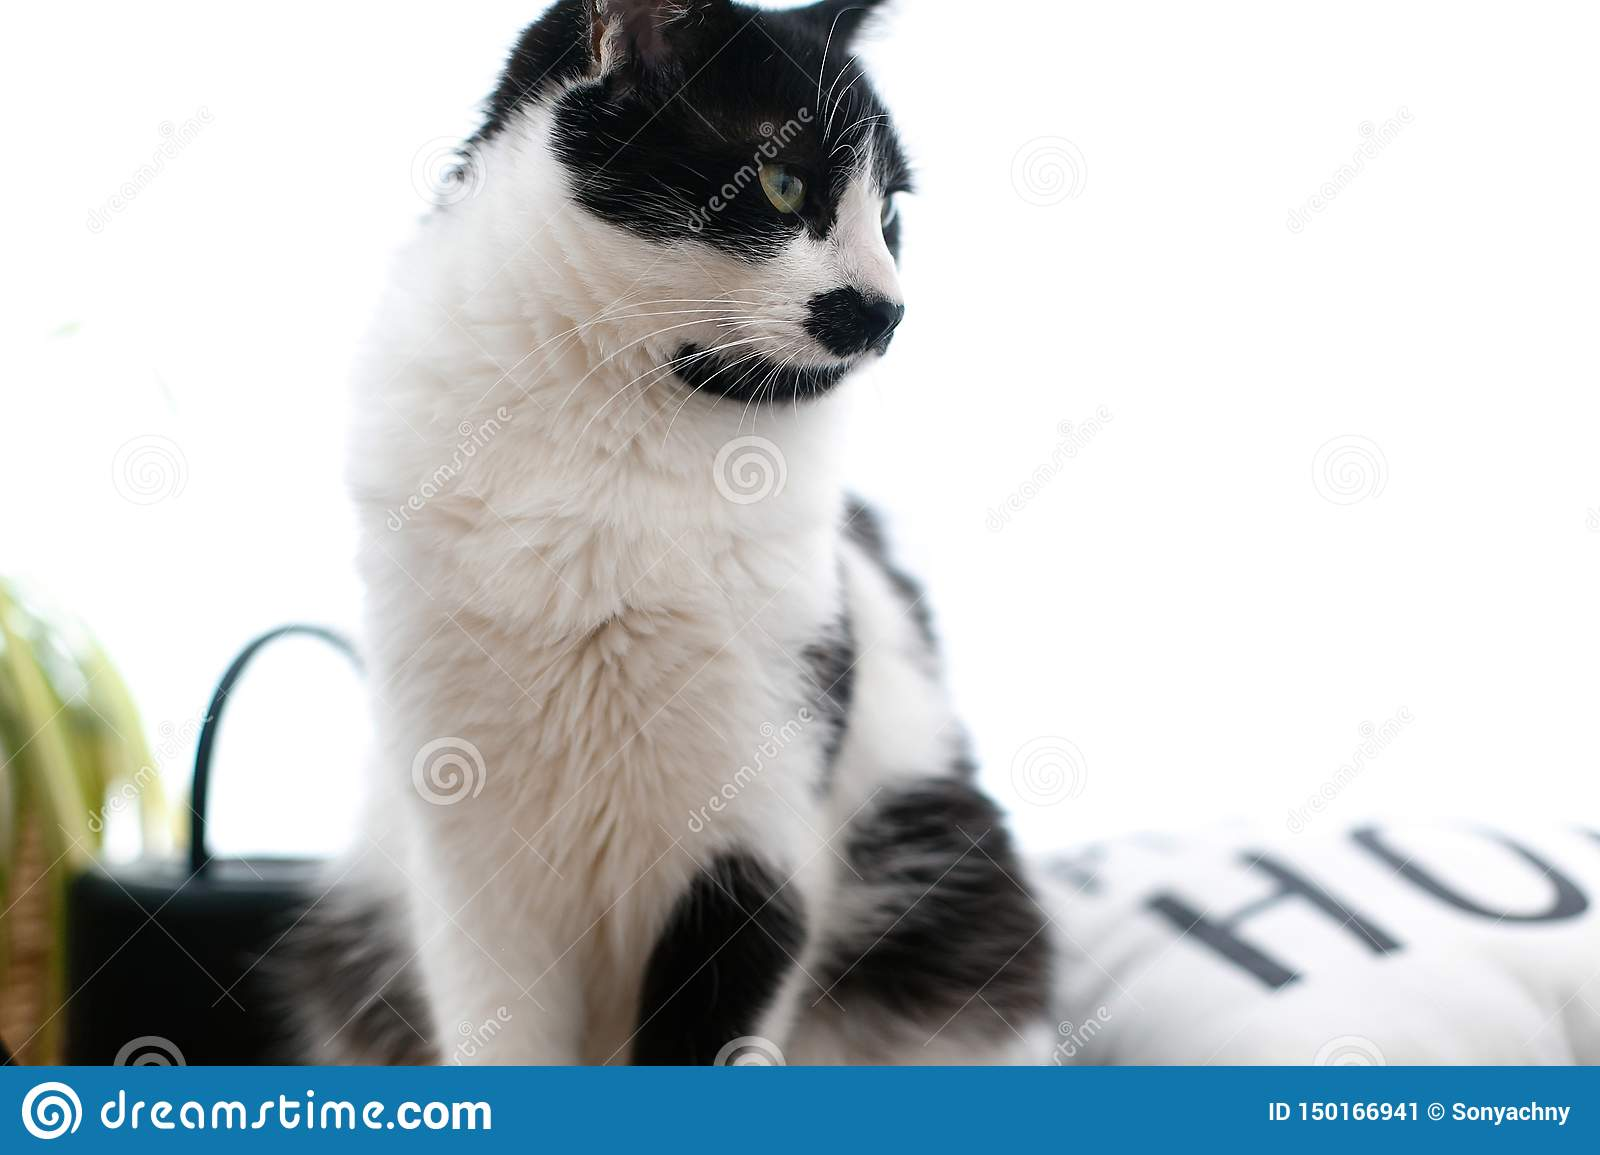 Cute cat with mustache sitting and relaxing on bed. Funny black and white kitty with angry emotions resting on stylish sheets.